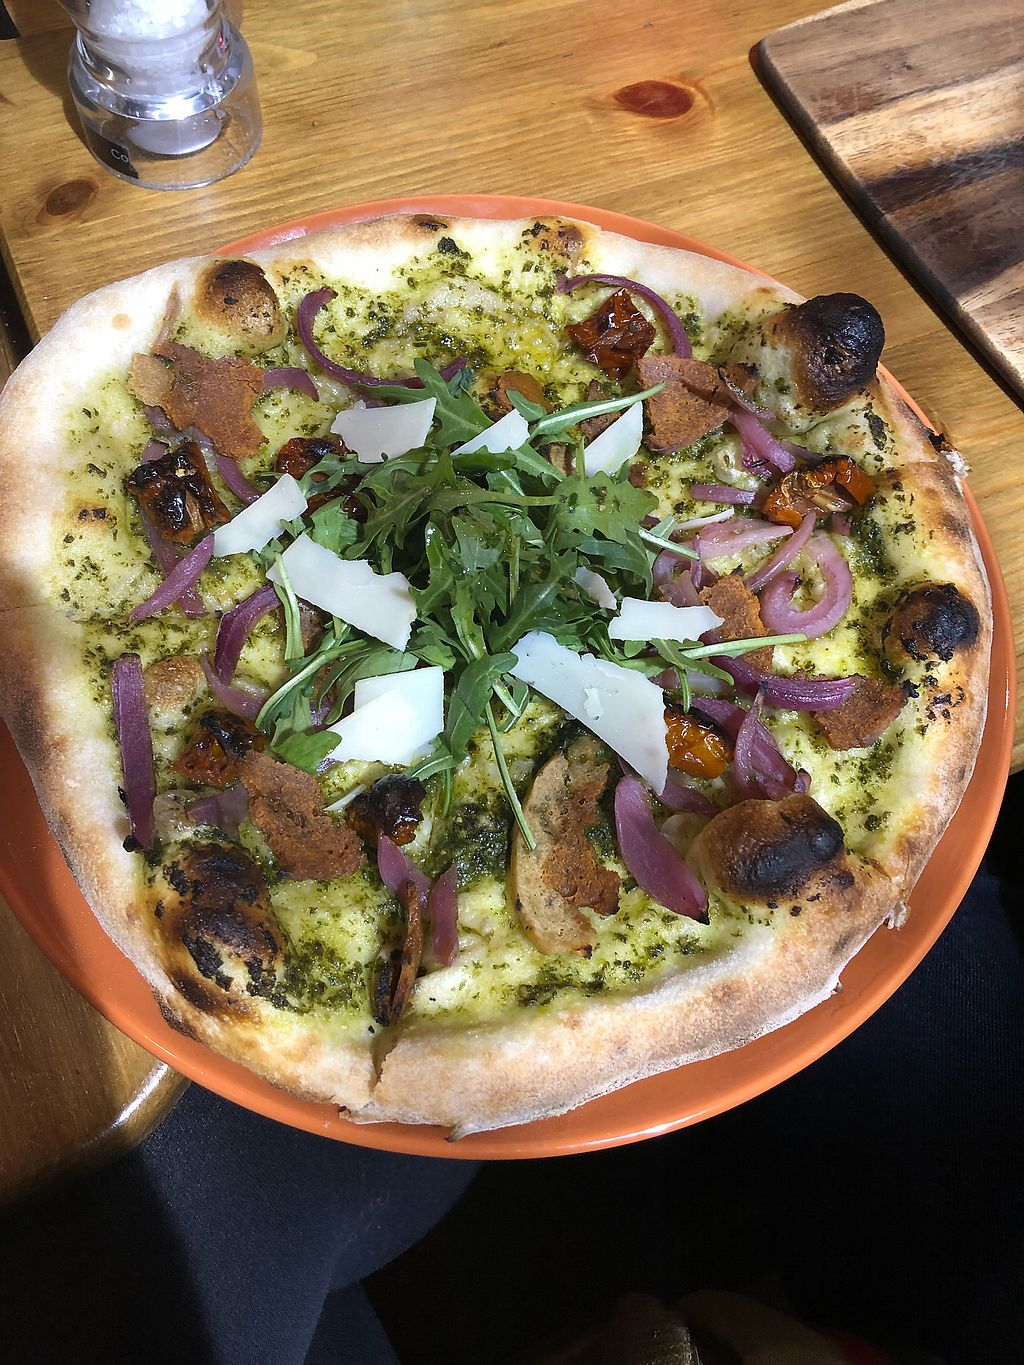 """Photo of Aperitivo  by <a href=""""/members/profile/ElTorto"""">ElTorto</a> <br/>Mr. Green Vegan + Vegan Bacon <br/> February 17, 2018  - <a href='/contact/abuse/image/84146/360563'>Report</a>"""